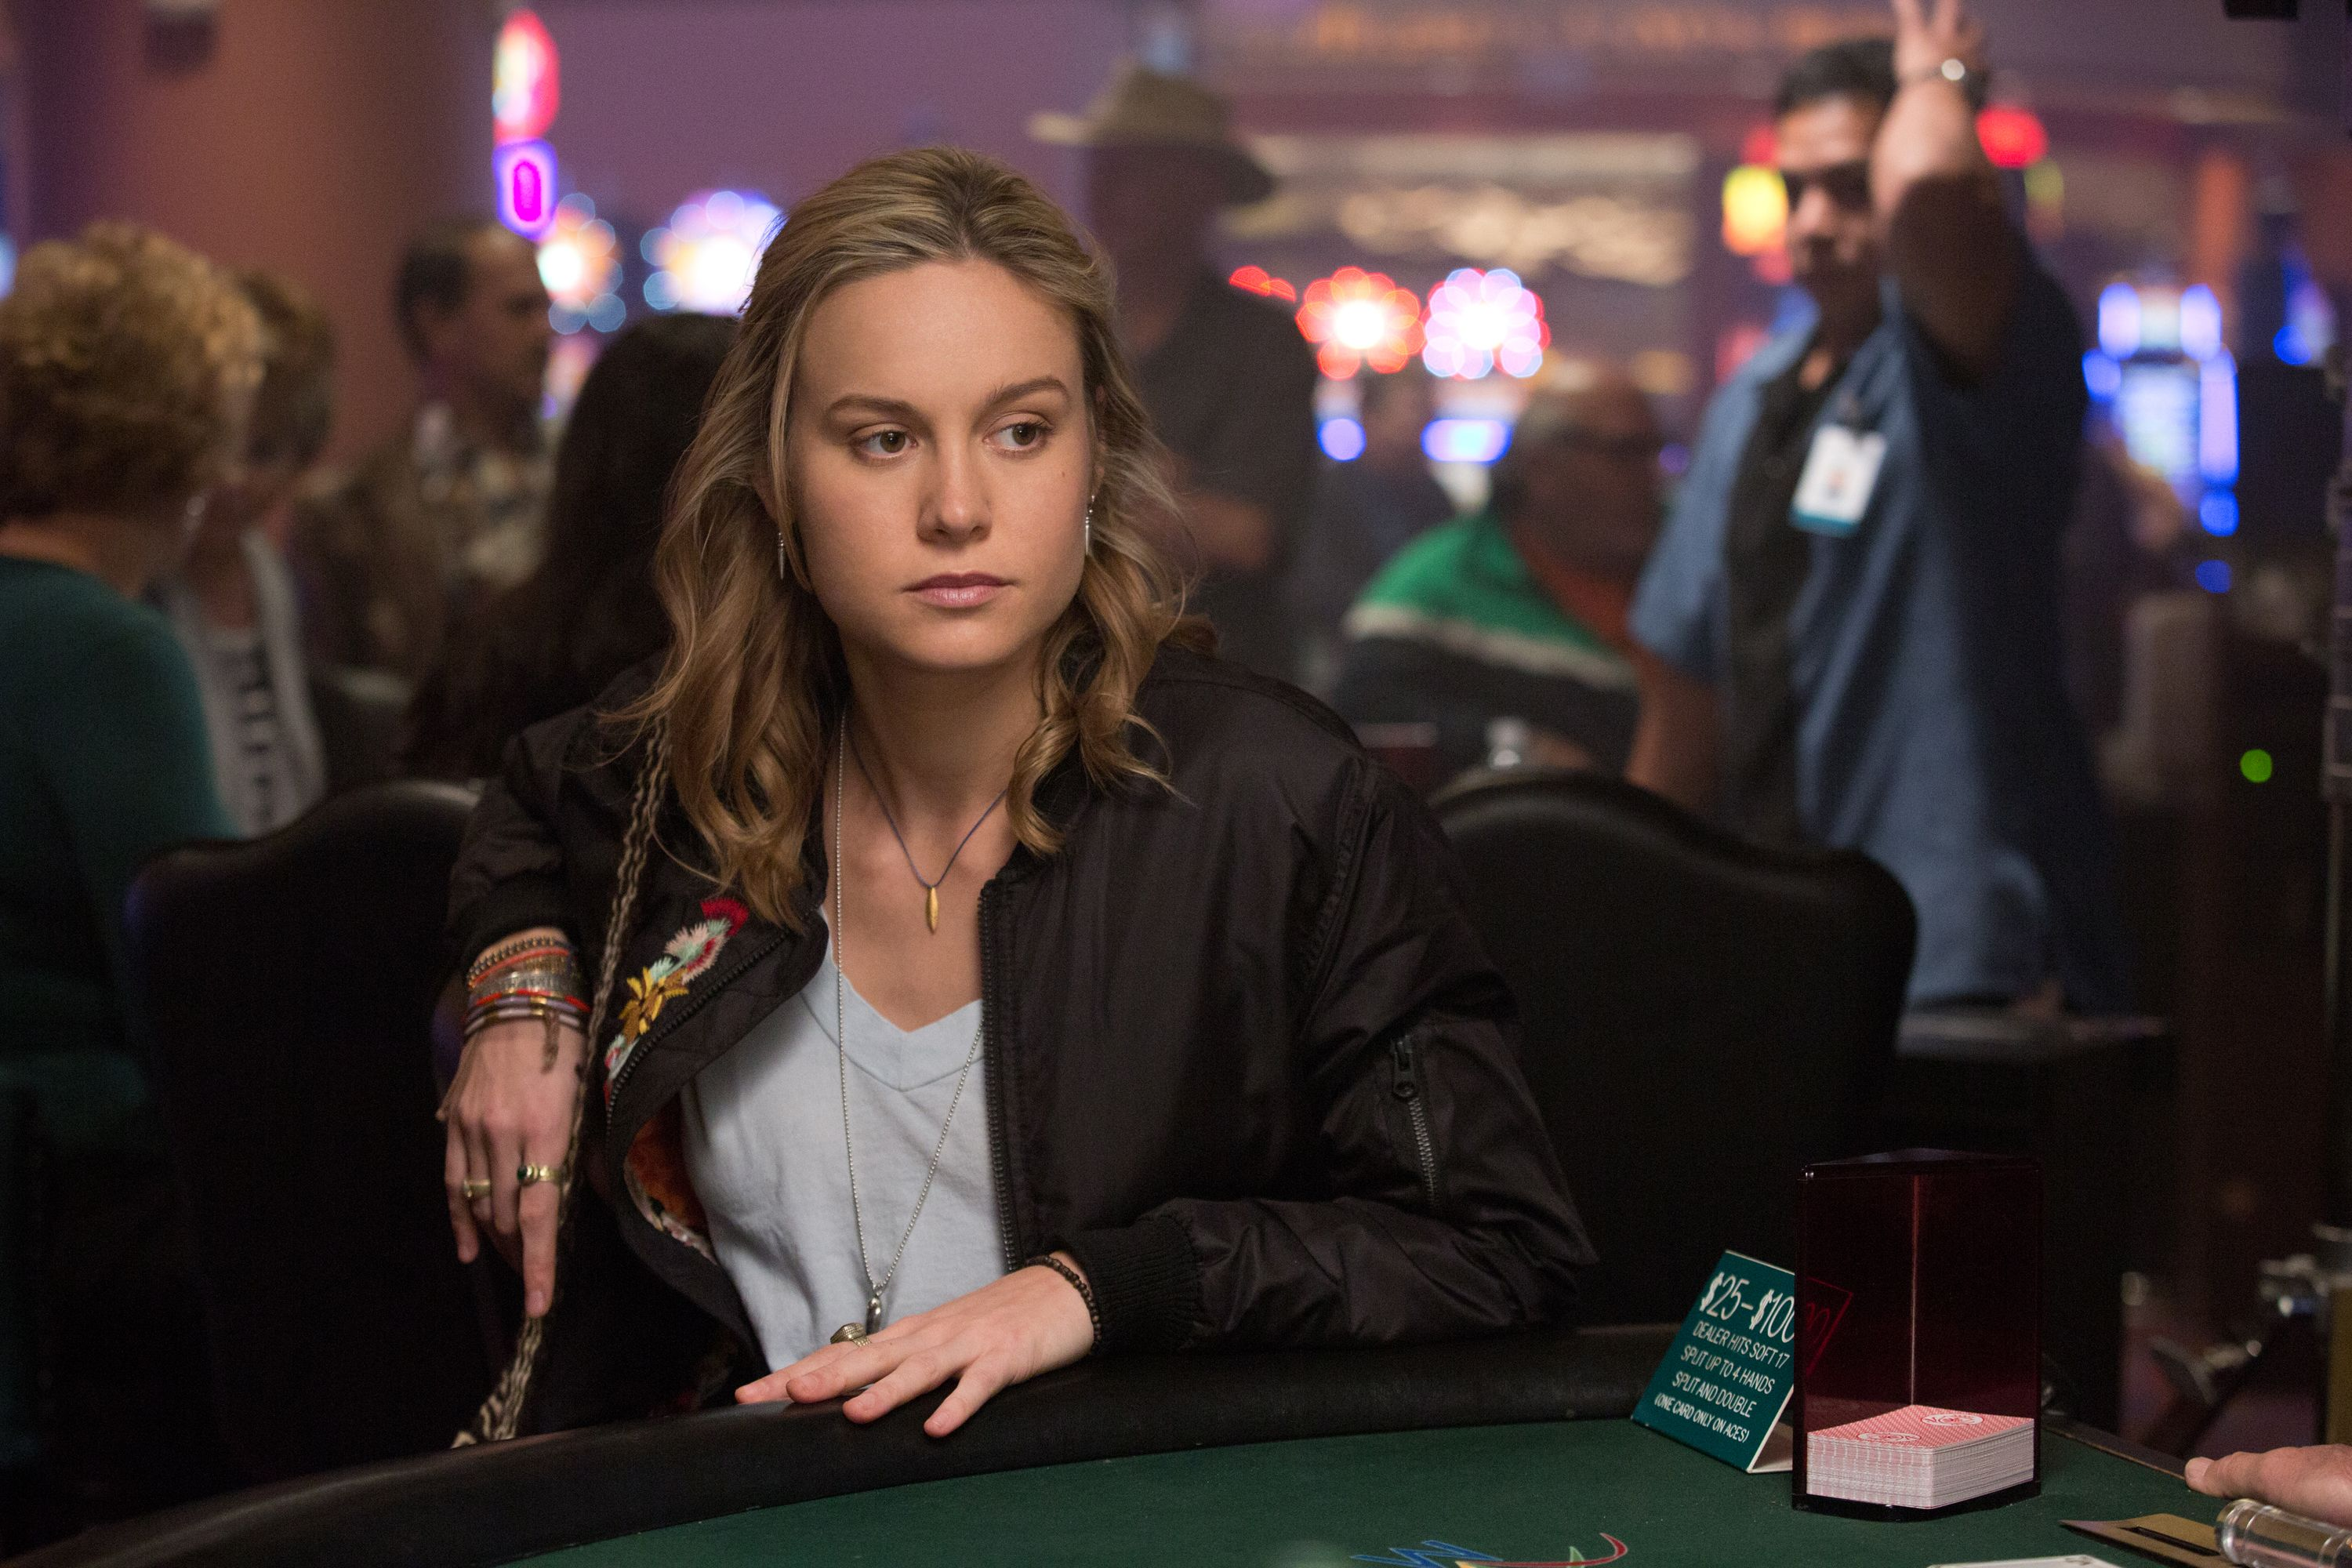 brie larson woody harrelson begin filming the glass castle collider brie larson the gambler